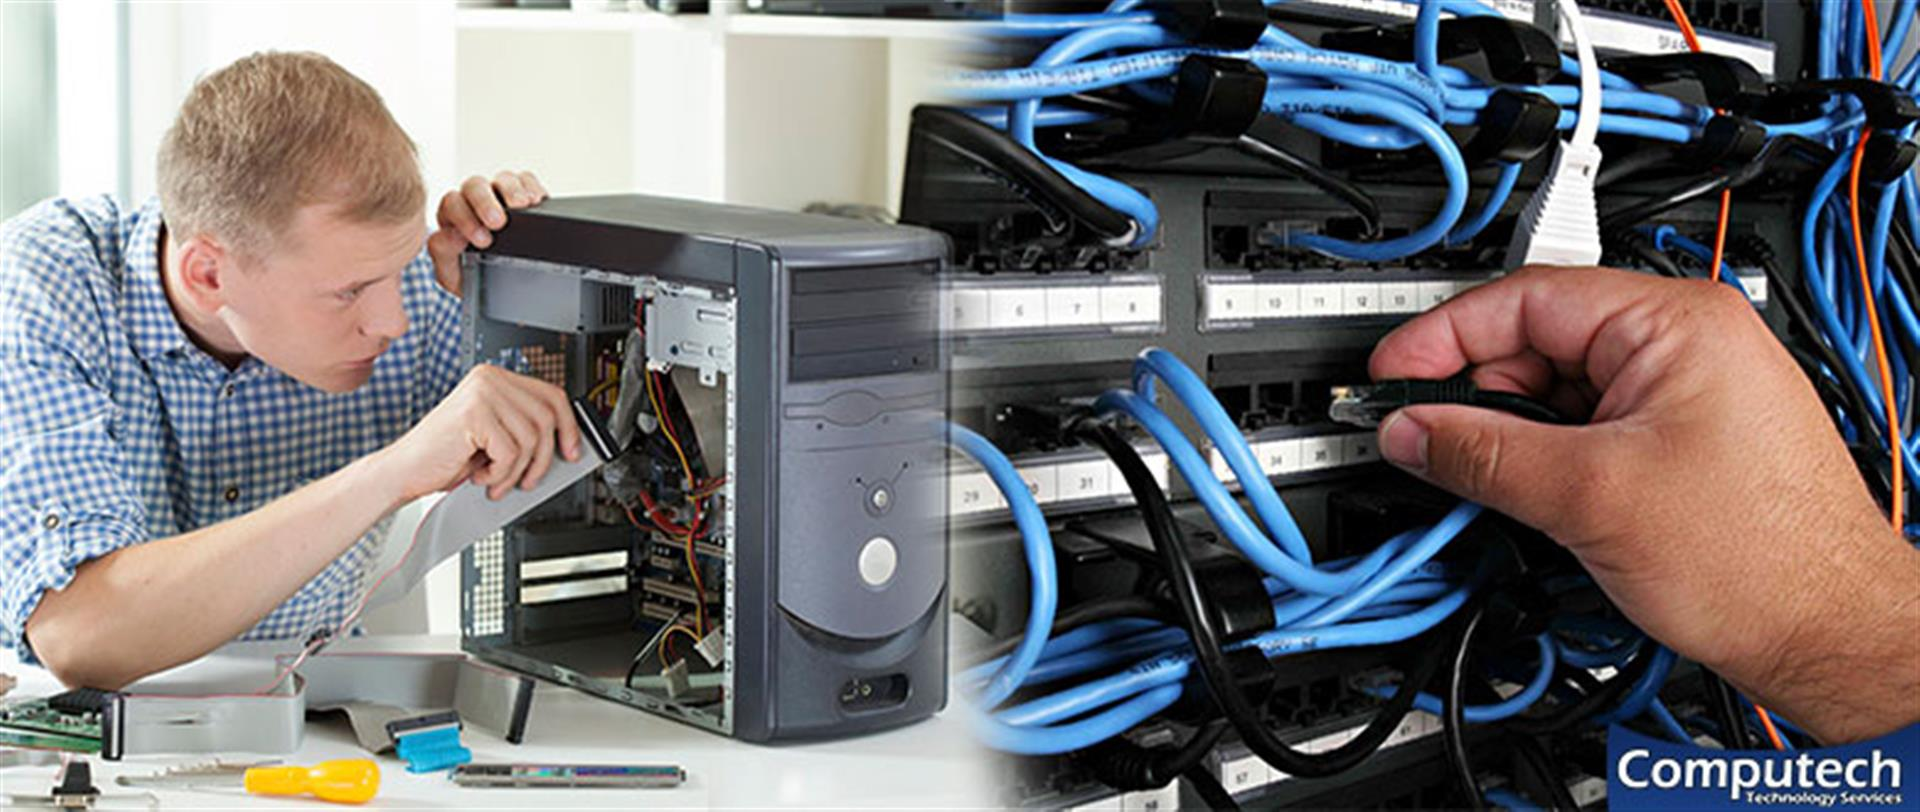 Buckeye Arizona On Site Computer PC & Printer Repairs, Network, Telecom Voice and Broadband Data Wiring Solutions